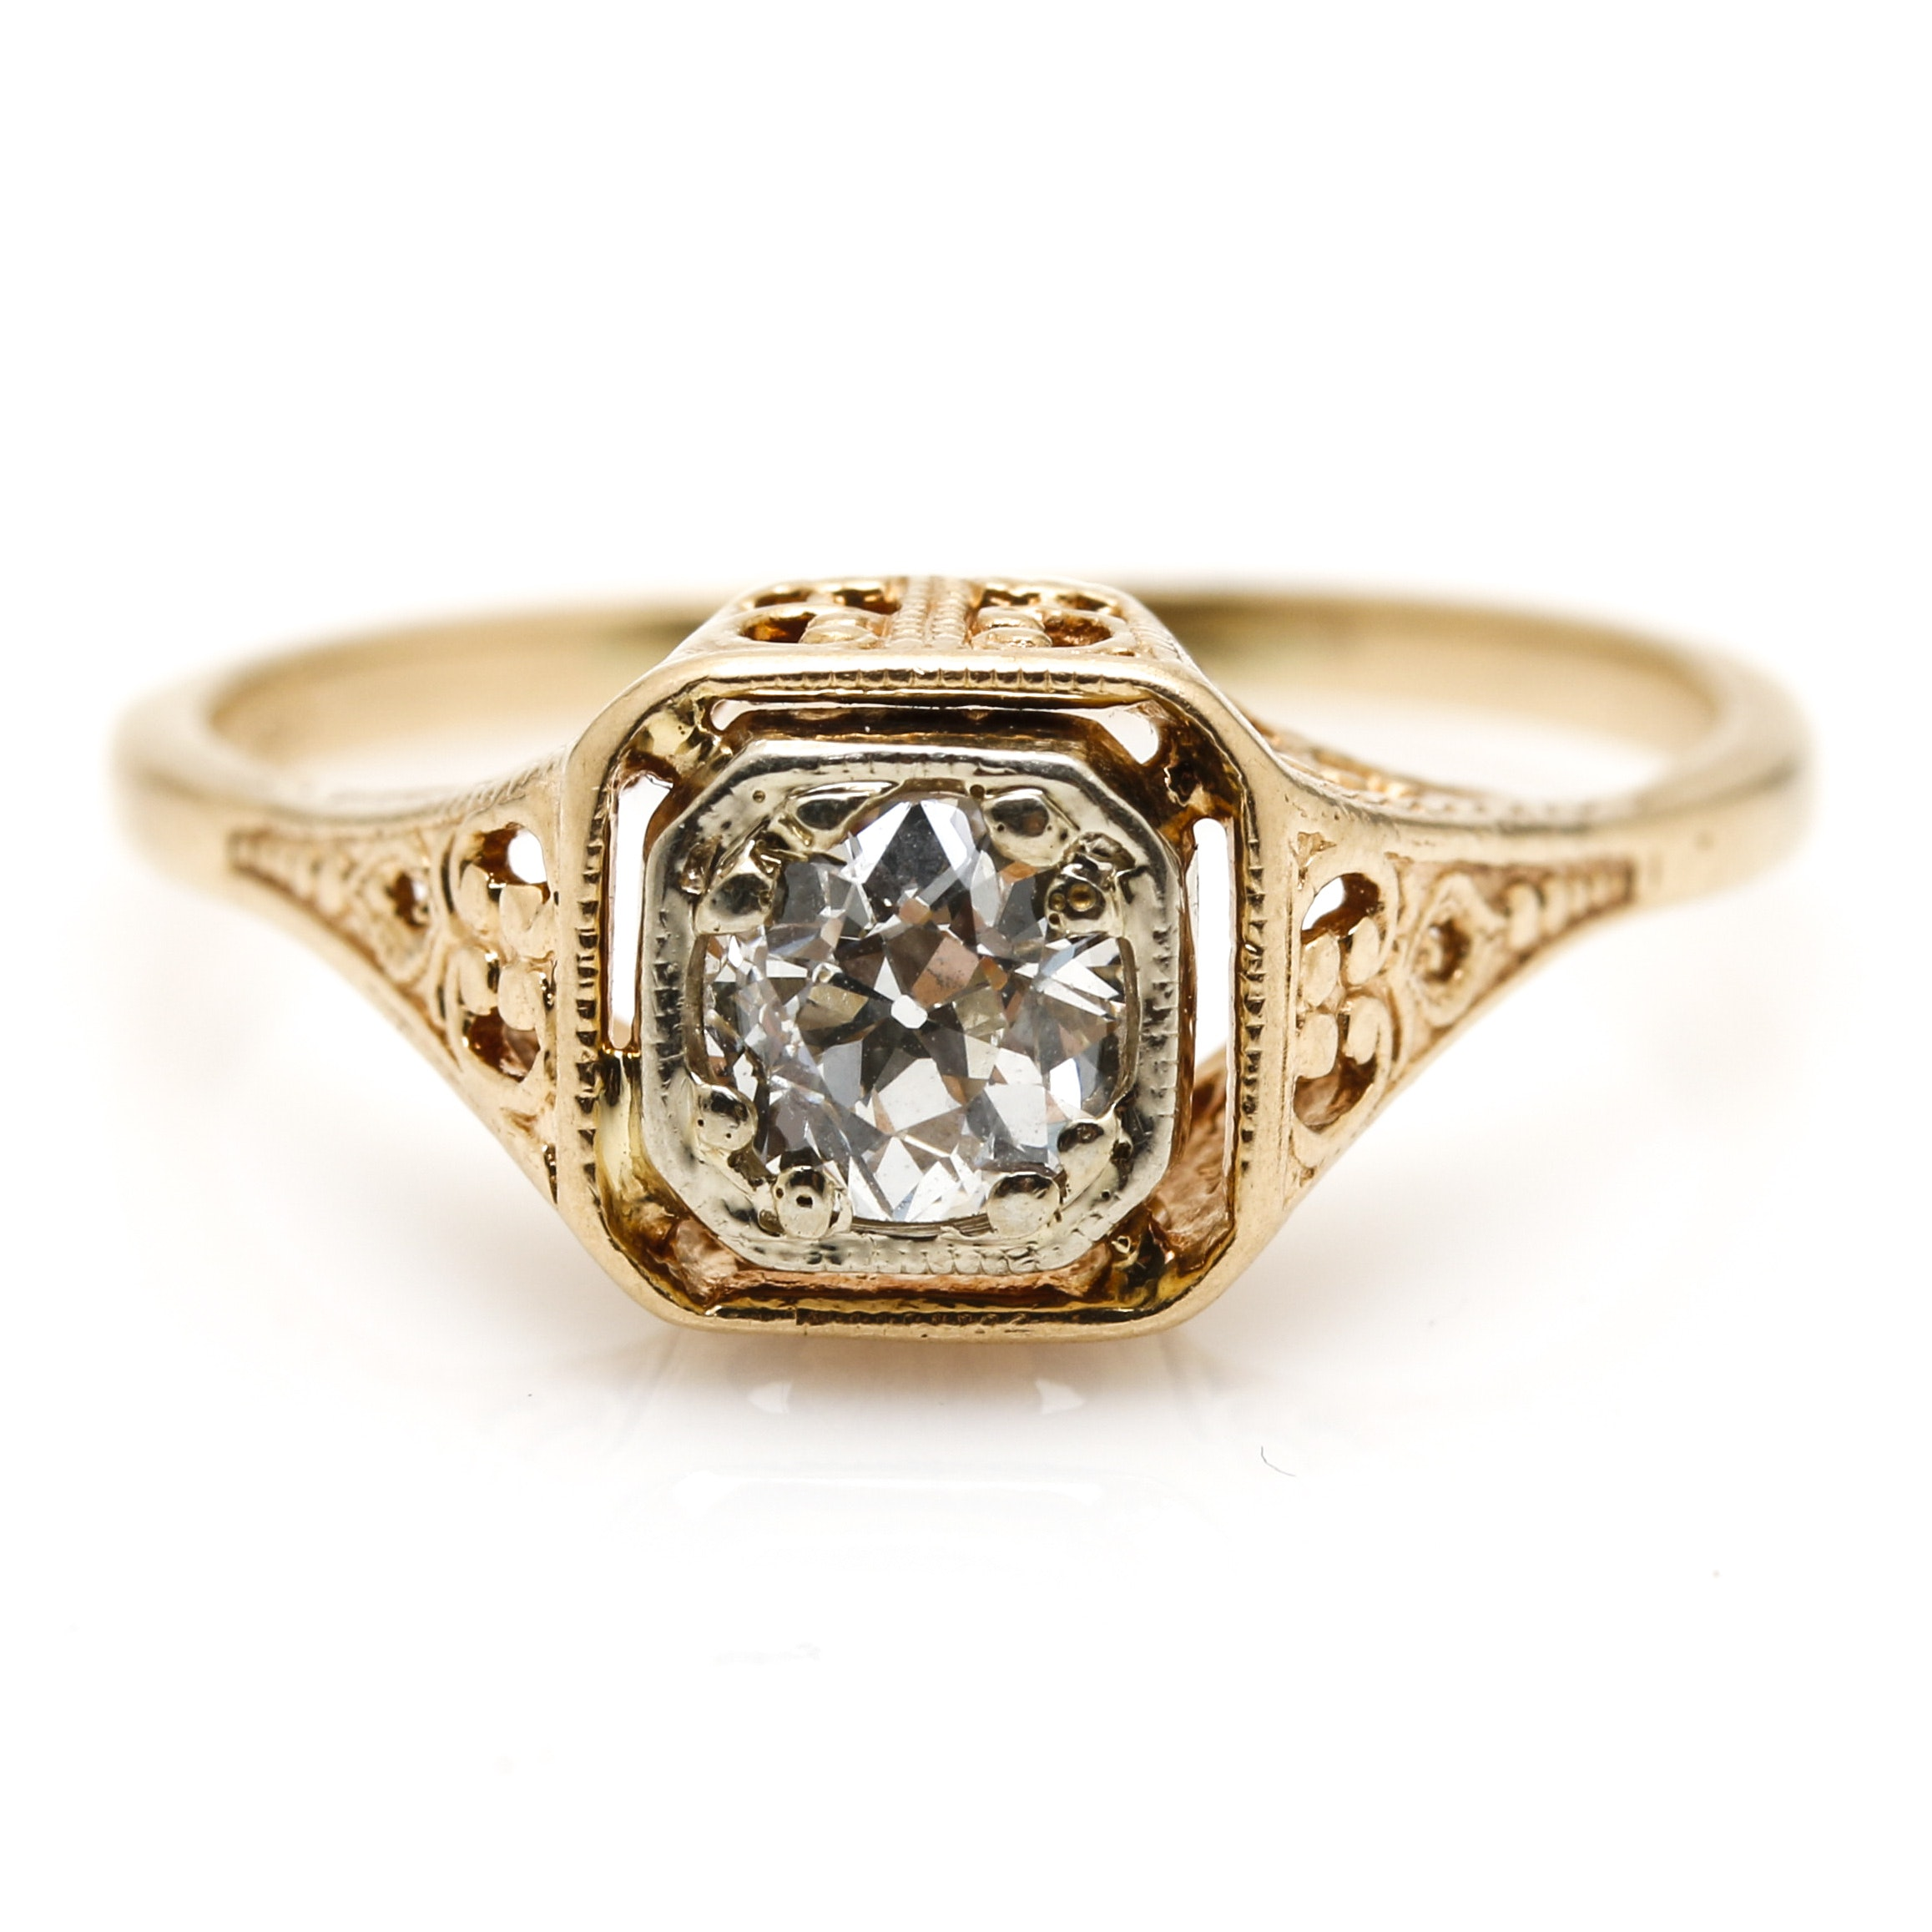 14K Yellow Gold Vintage Style Diamond Ring